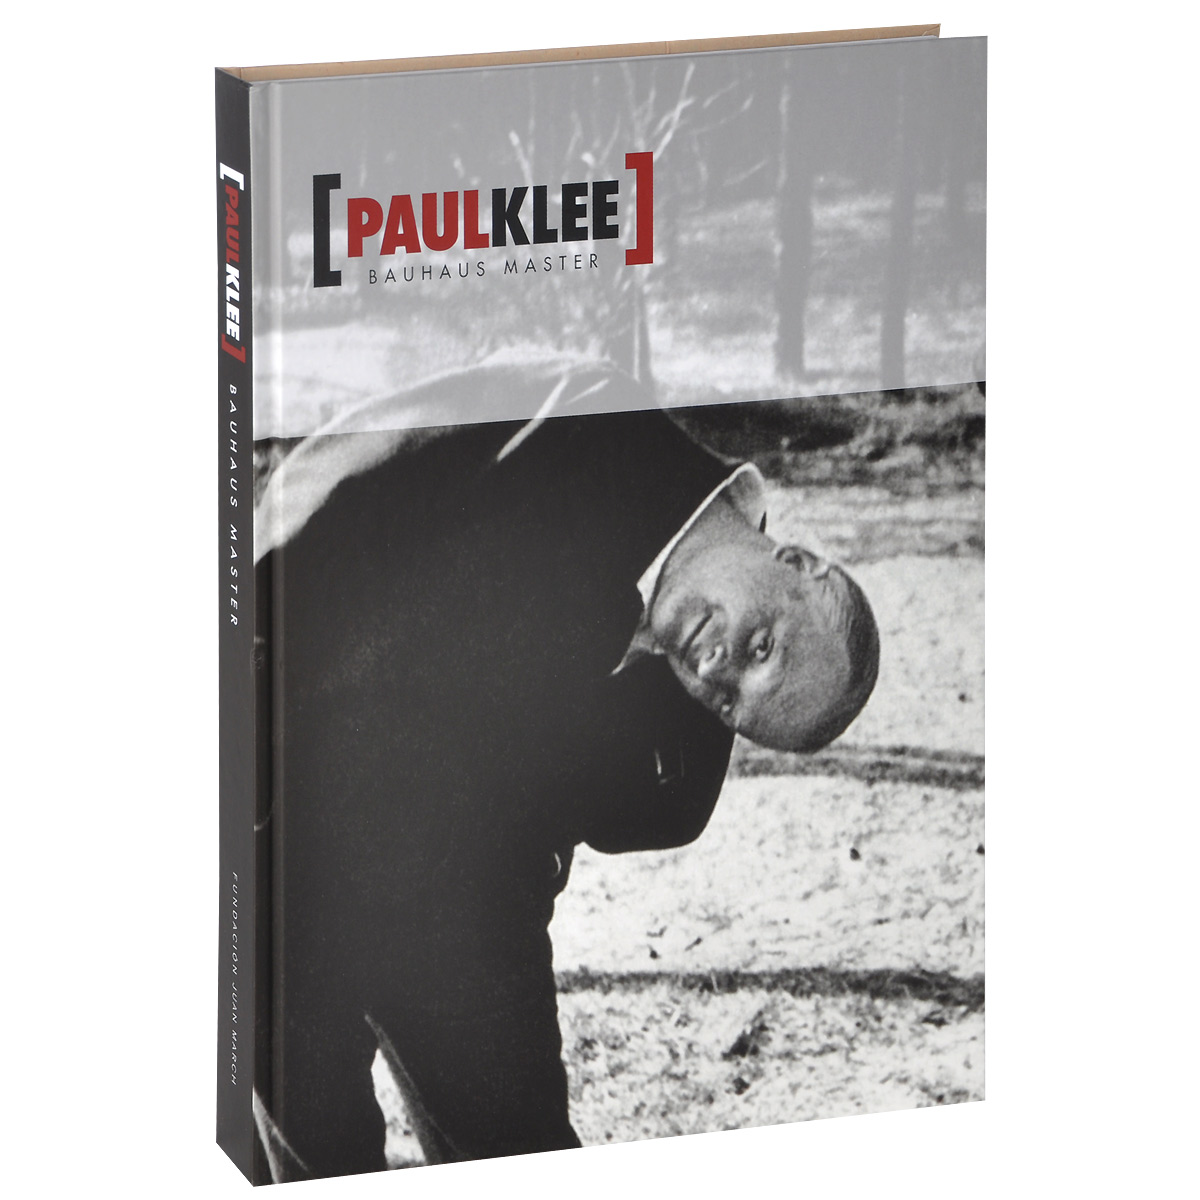 Paul Klee: Bauhaus Master master photographs – master photgraphs from exhibitions 1959–1967